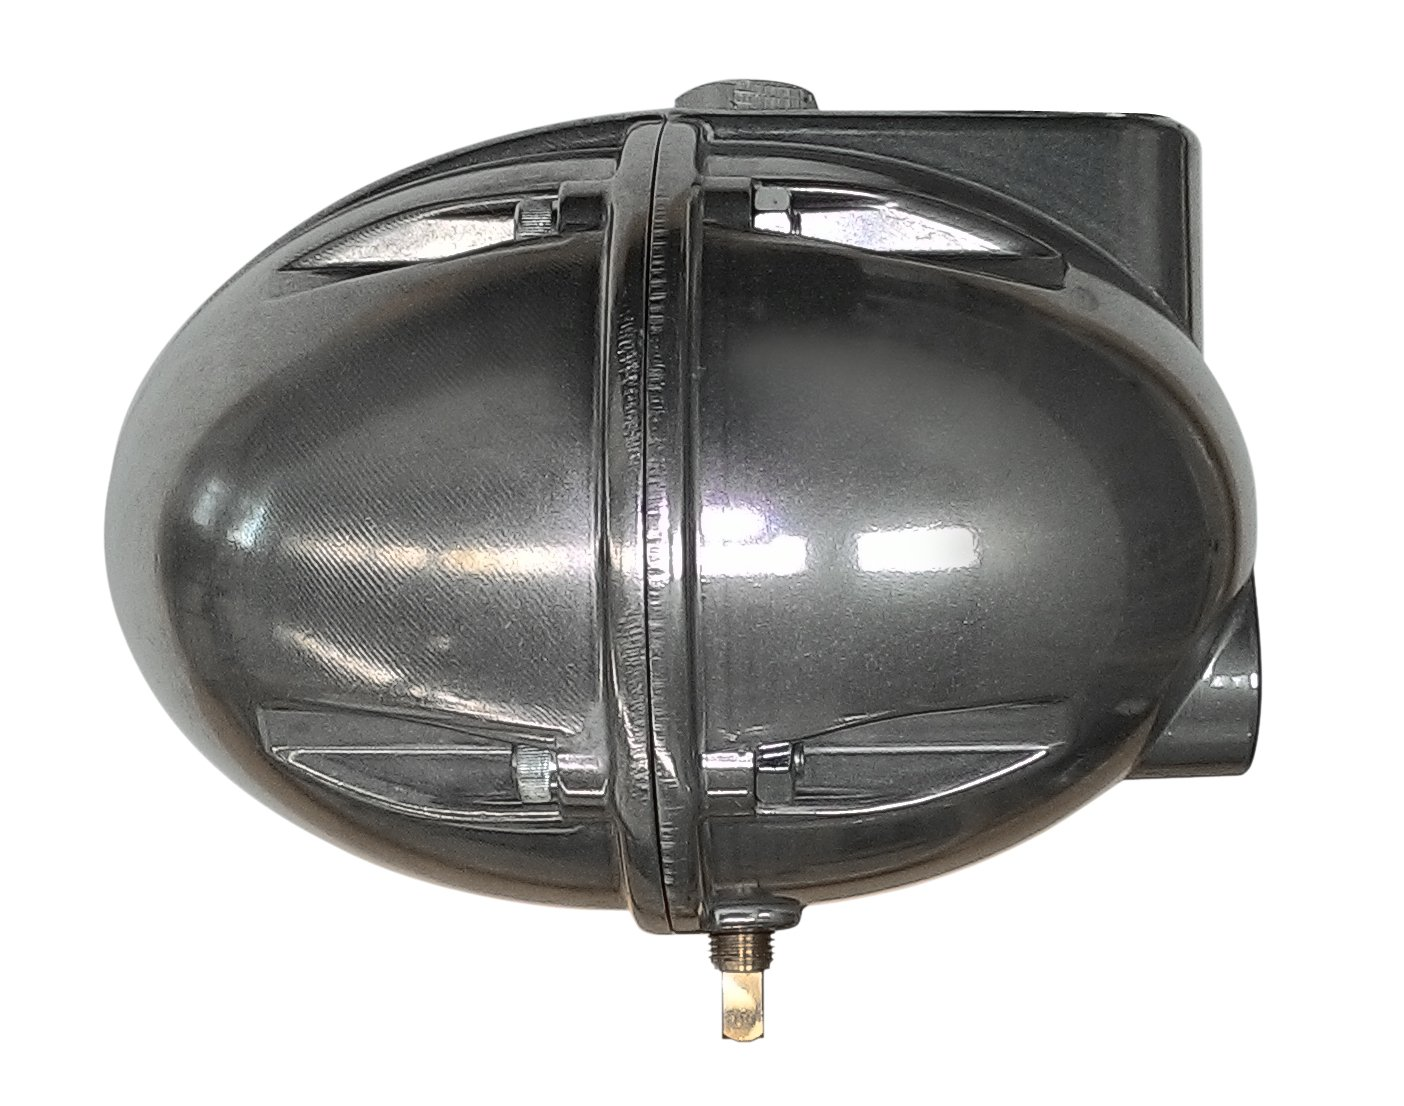 Automatic Float Drain for Compressed Air Tanks, Filters, Aftercoolers, Dryers - Float Operated Egg Drain/Football Drain - 1/2'' NPT, 230 PSI Max Pressure, P/N MDTOT-01 by Alpha-Pure by ALPHA-PURE